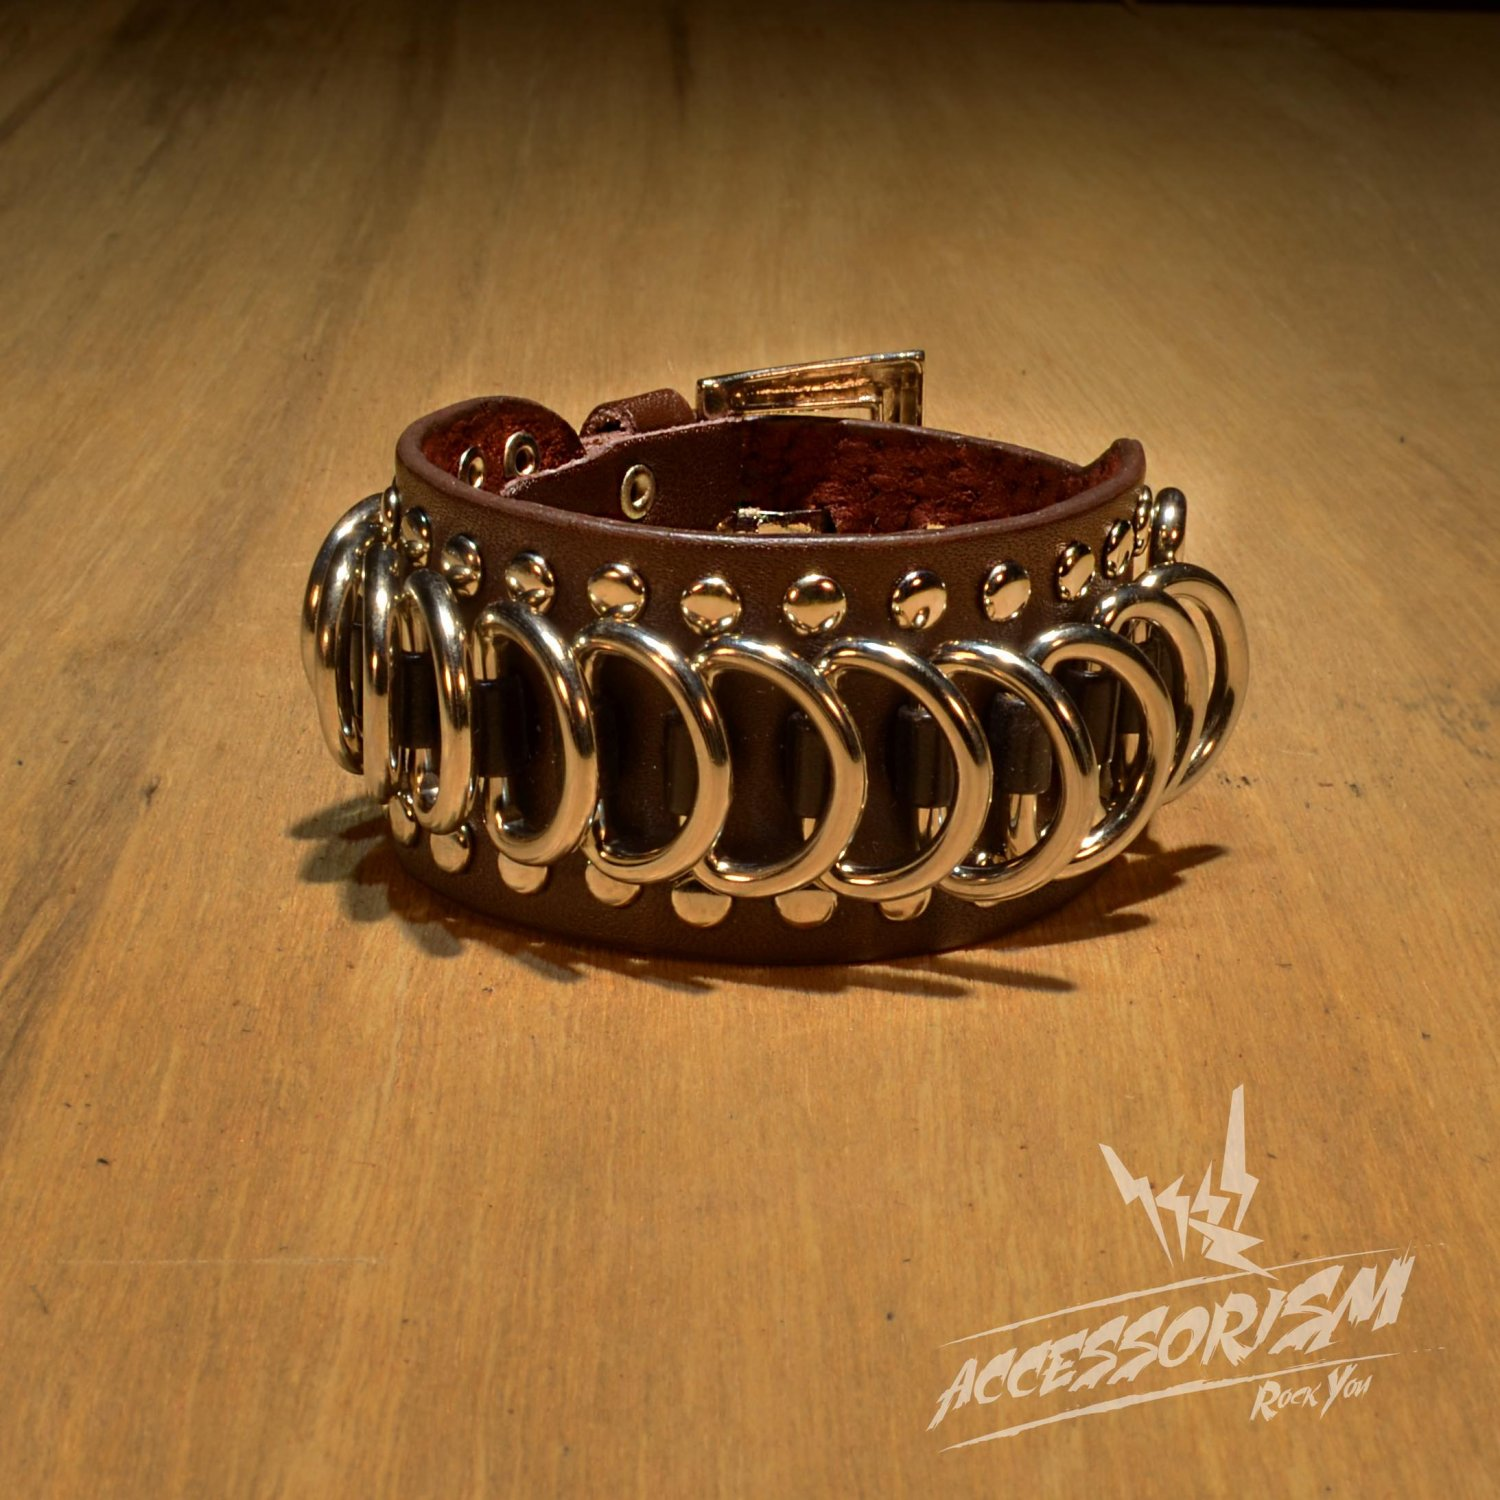 Gothic Metal Circularity Brown Leather Wristband Bracelet (B640RN)